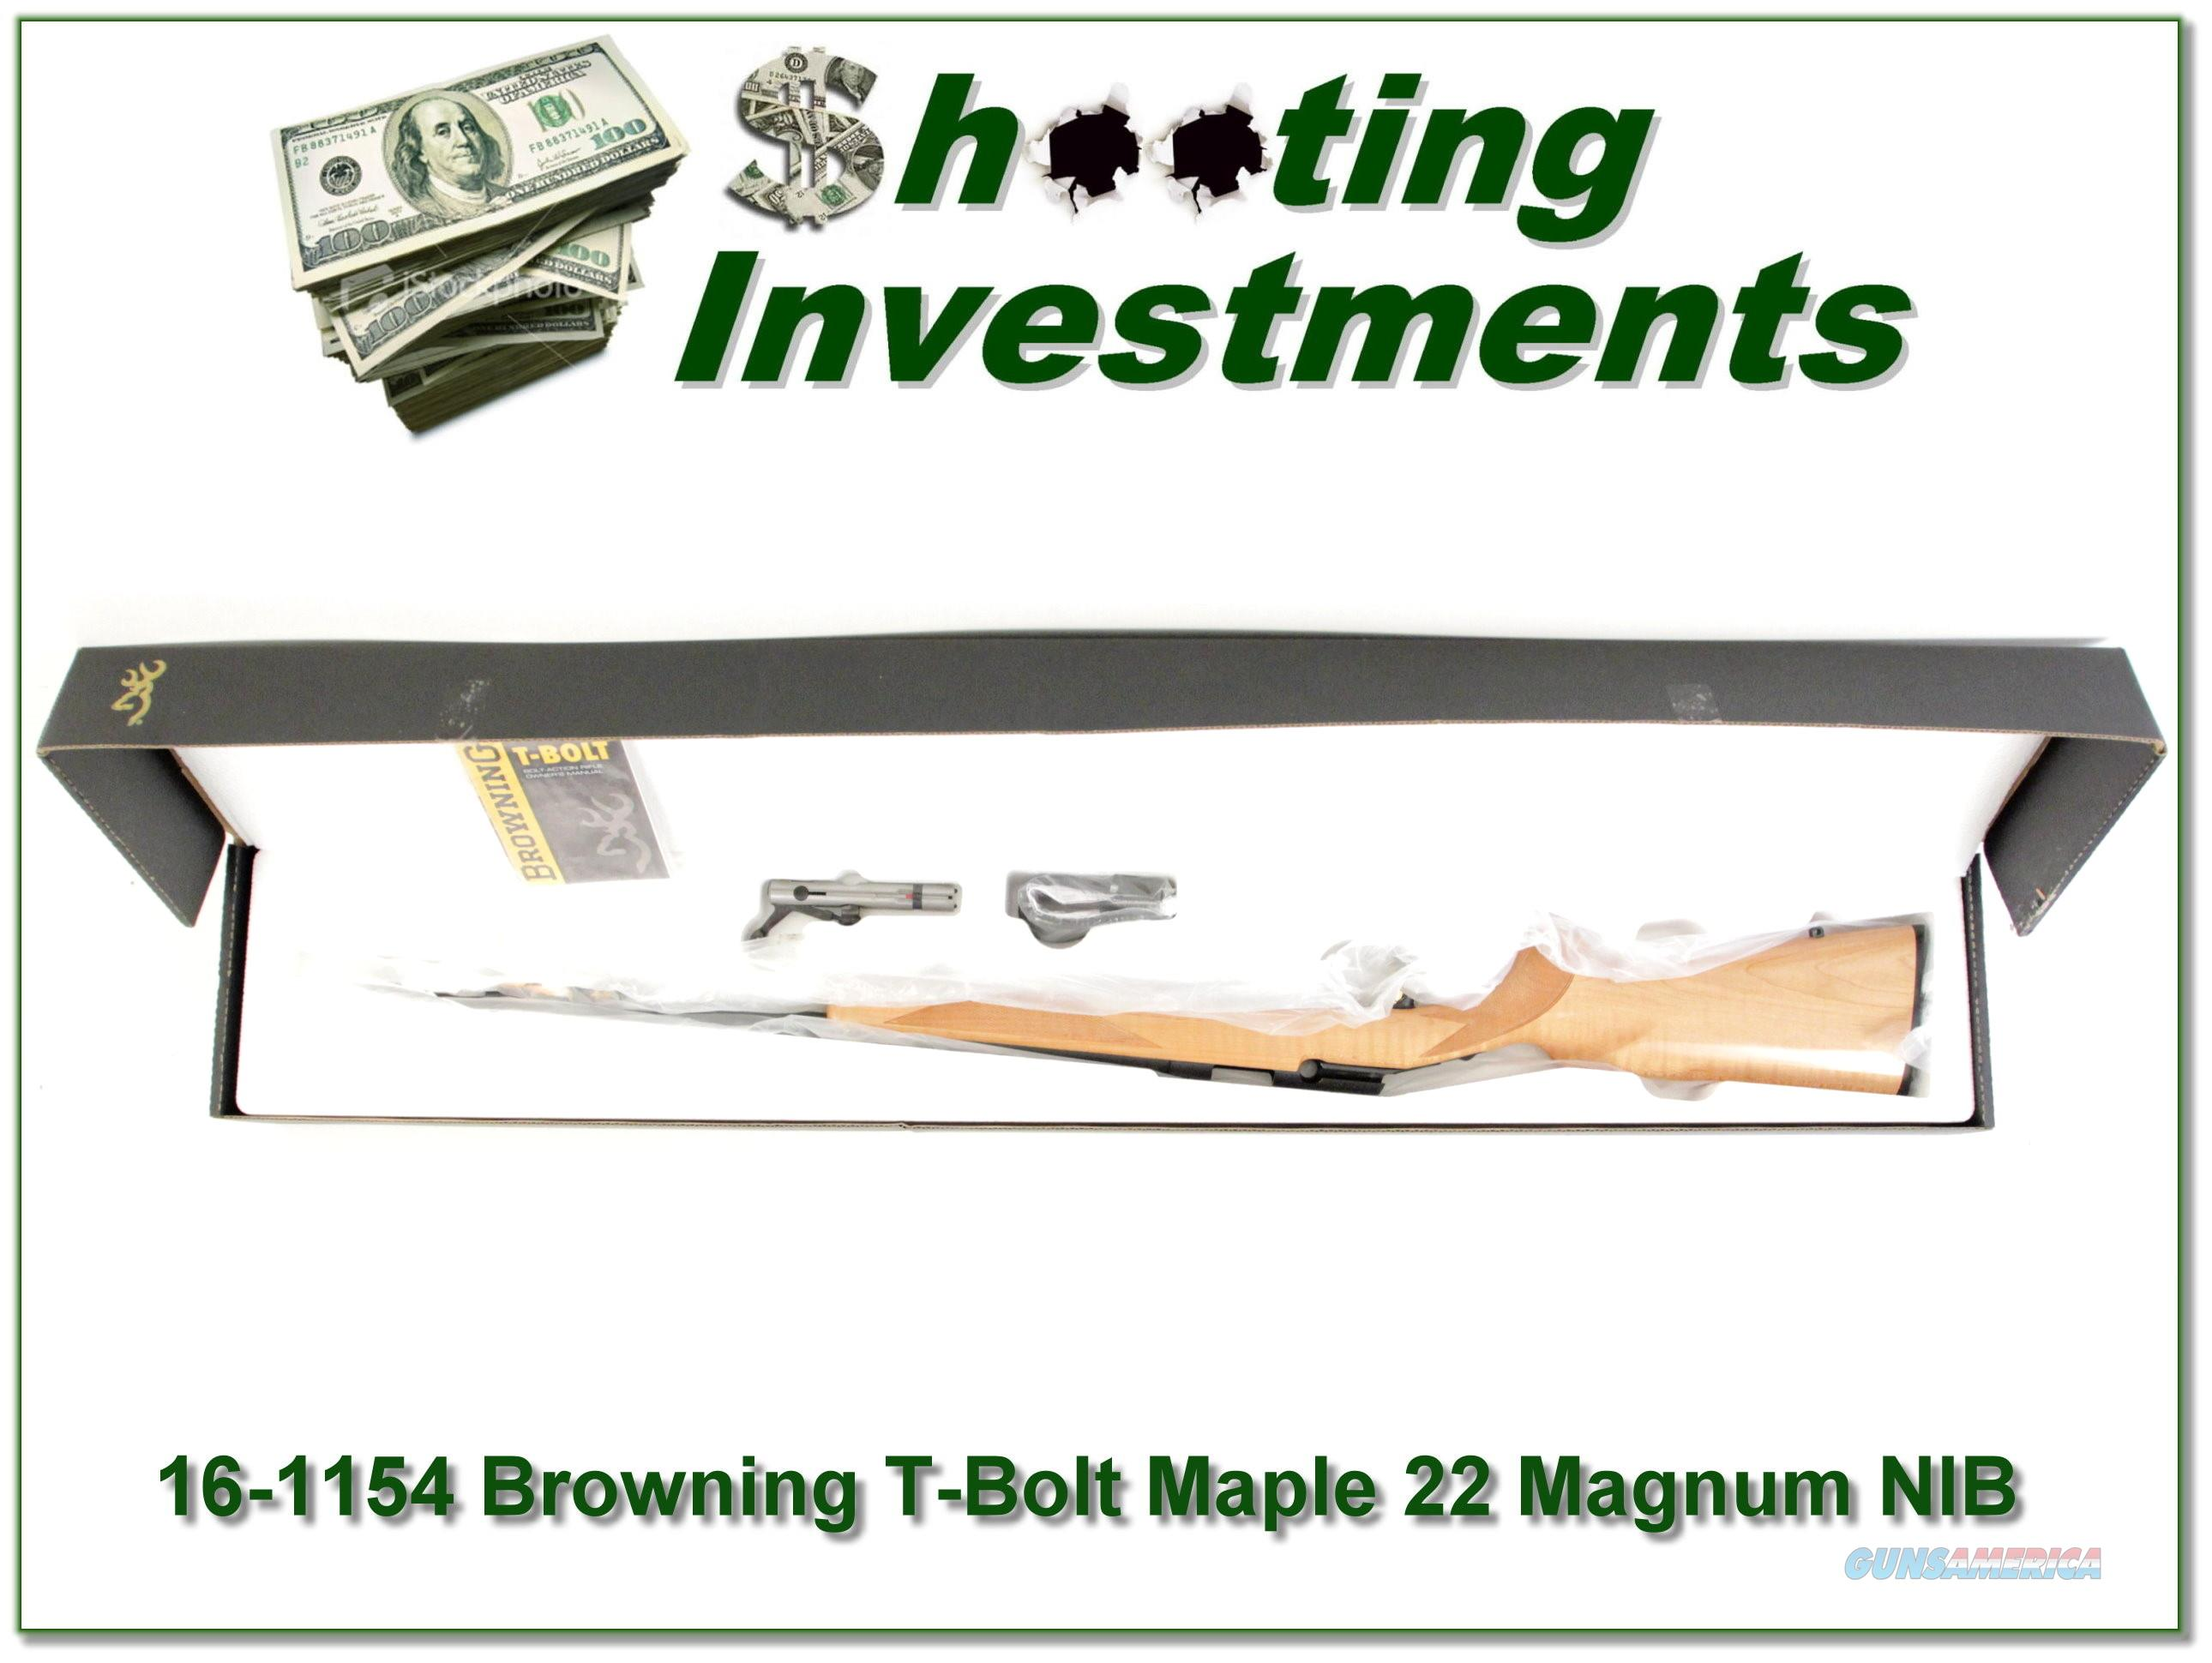 Browning T-bolt 22 Magnum Limited Run Maple Stock NIB  Guns > Rifles > Browning Rifles > Bolt Action > Hunting > Blue